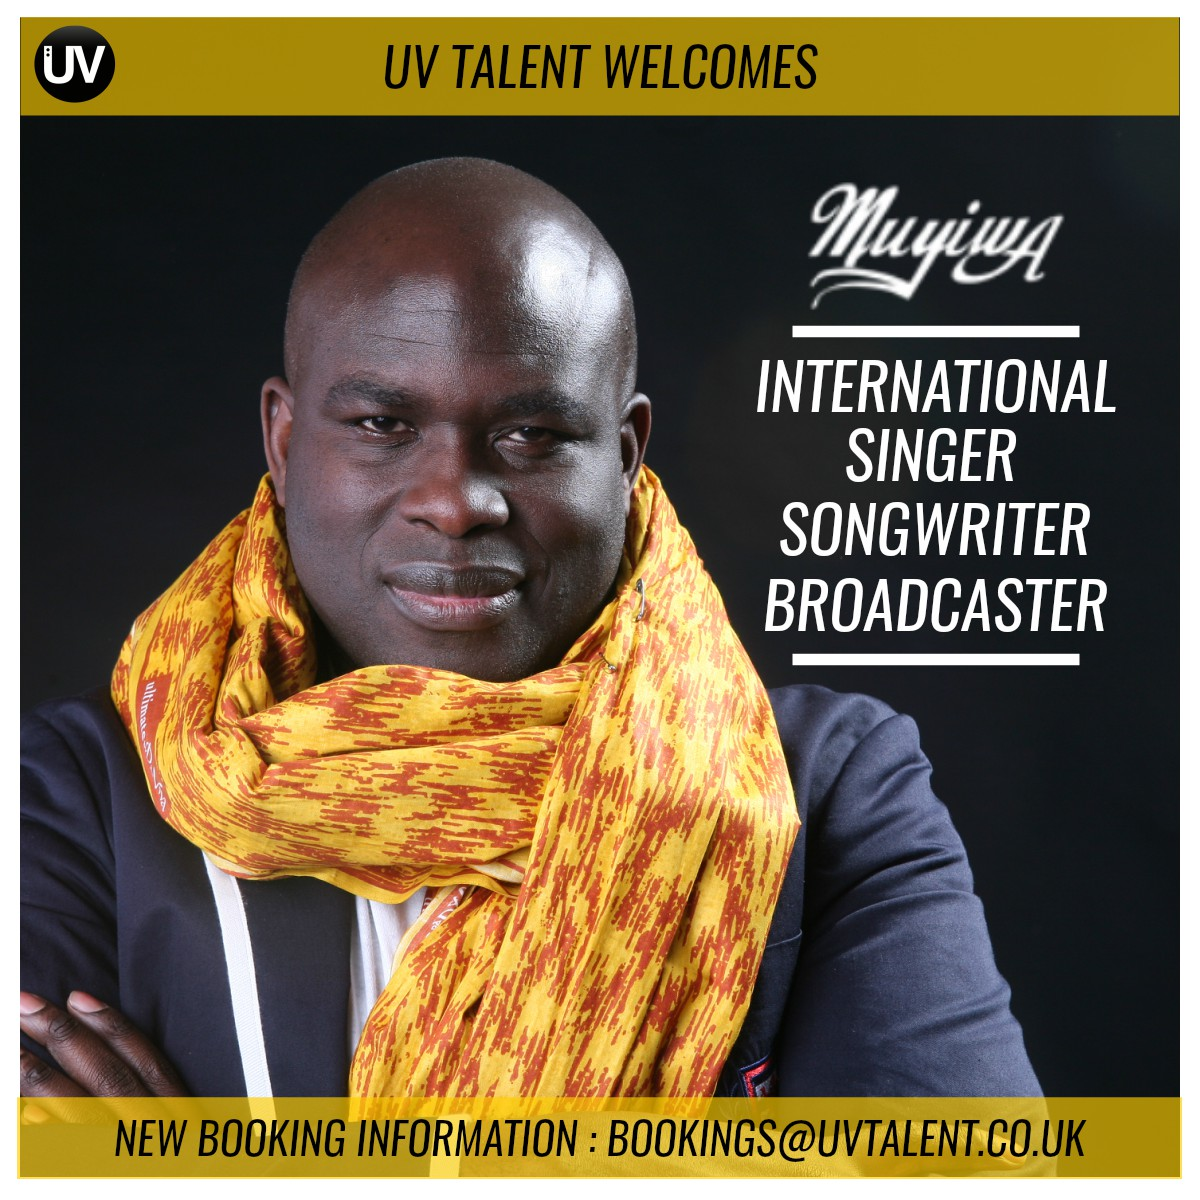 Muyiwa Forms New Partnership With UV Talent Agency [@OfficialMuyiwa]